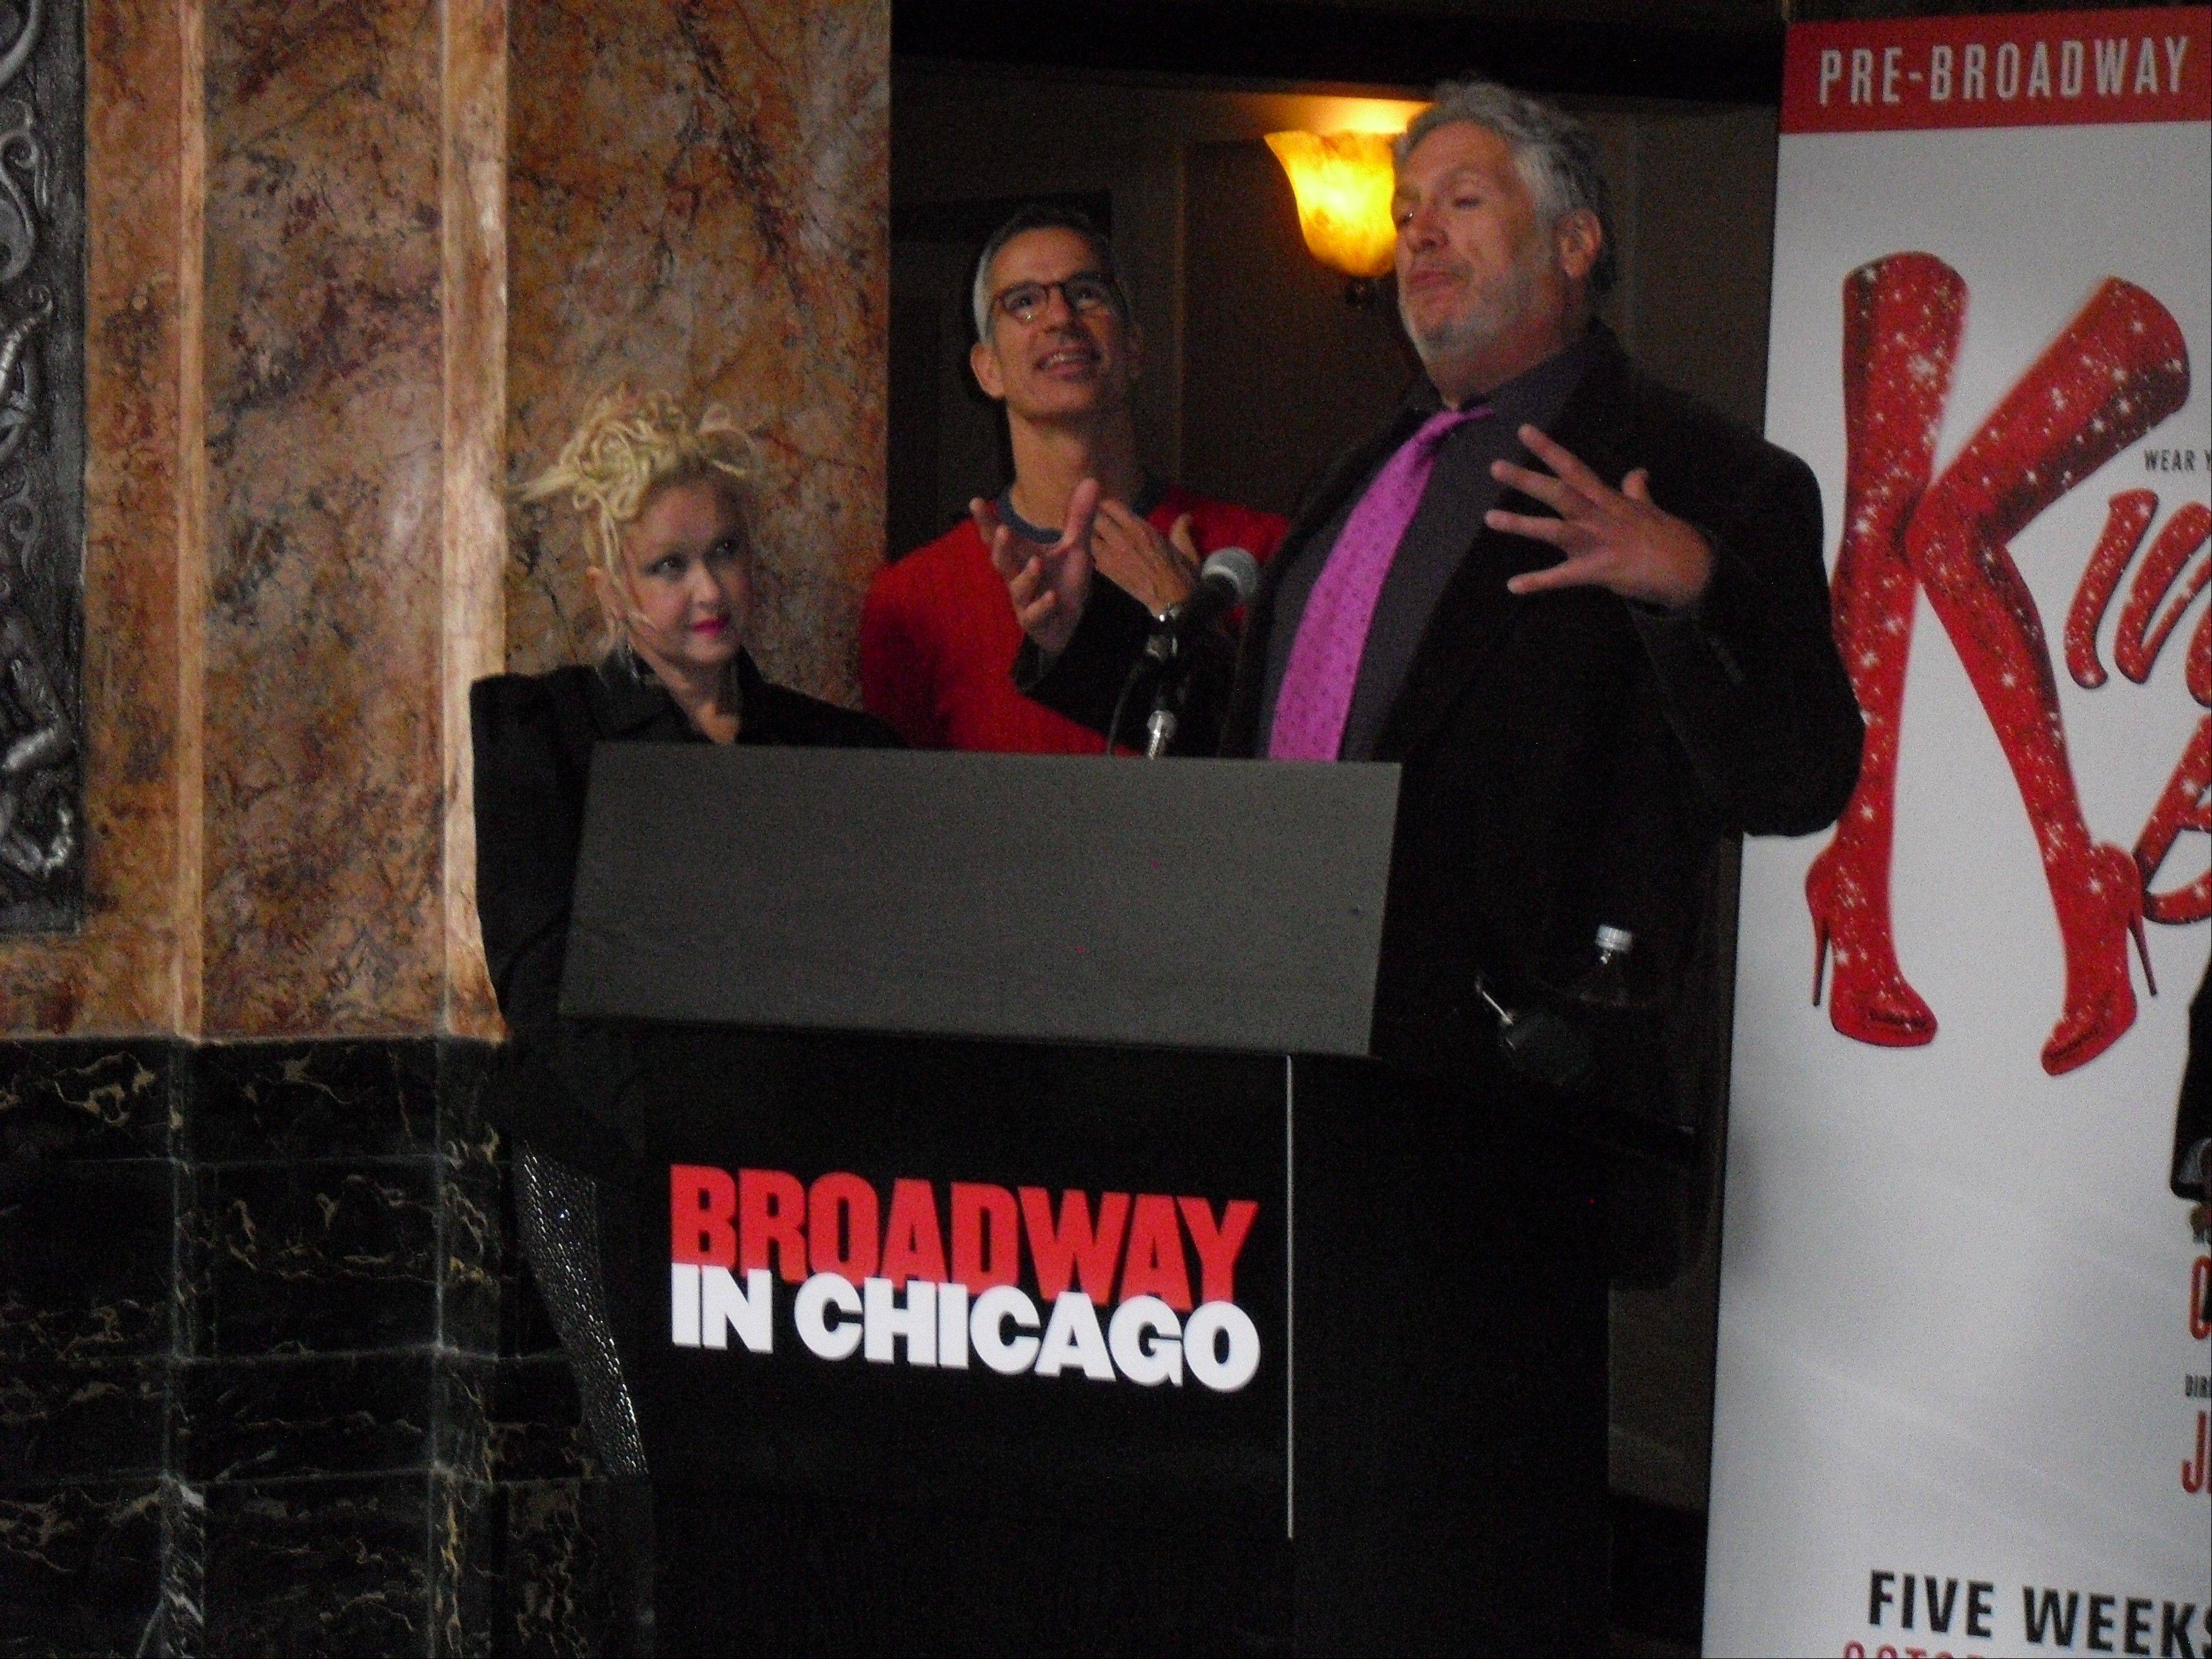 "The major creative team of the Broadway-bound world premiere musical ""Kinky Boots"" made an appearance at Chicago's Oriental Theatre Friday. From left is composer/lyricist Cyndi Lauper, director/choreographer Jerry Mitchell and playwright Harvey Fierstein. ""Kinky Boots"" runs at the Bank of America Theatre in Chicago from Tuesday, Oct. 2, through Sunday, Nov. 4."